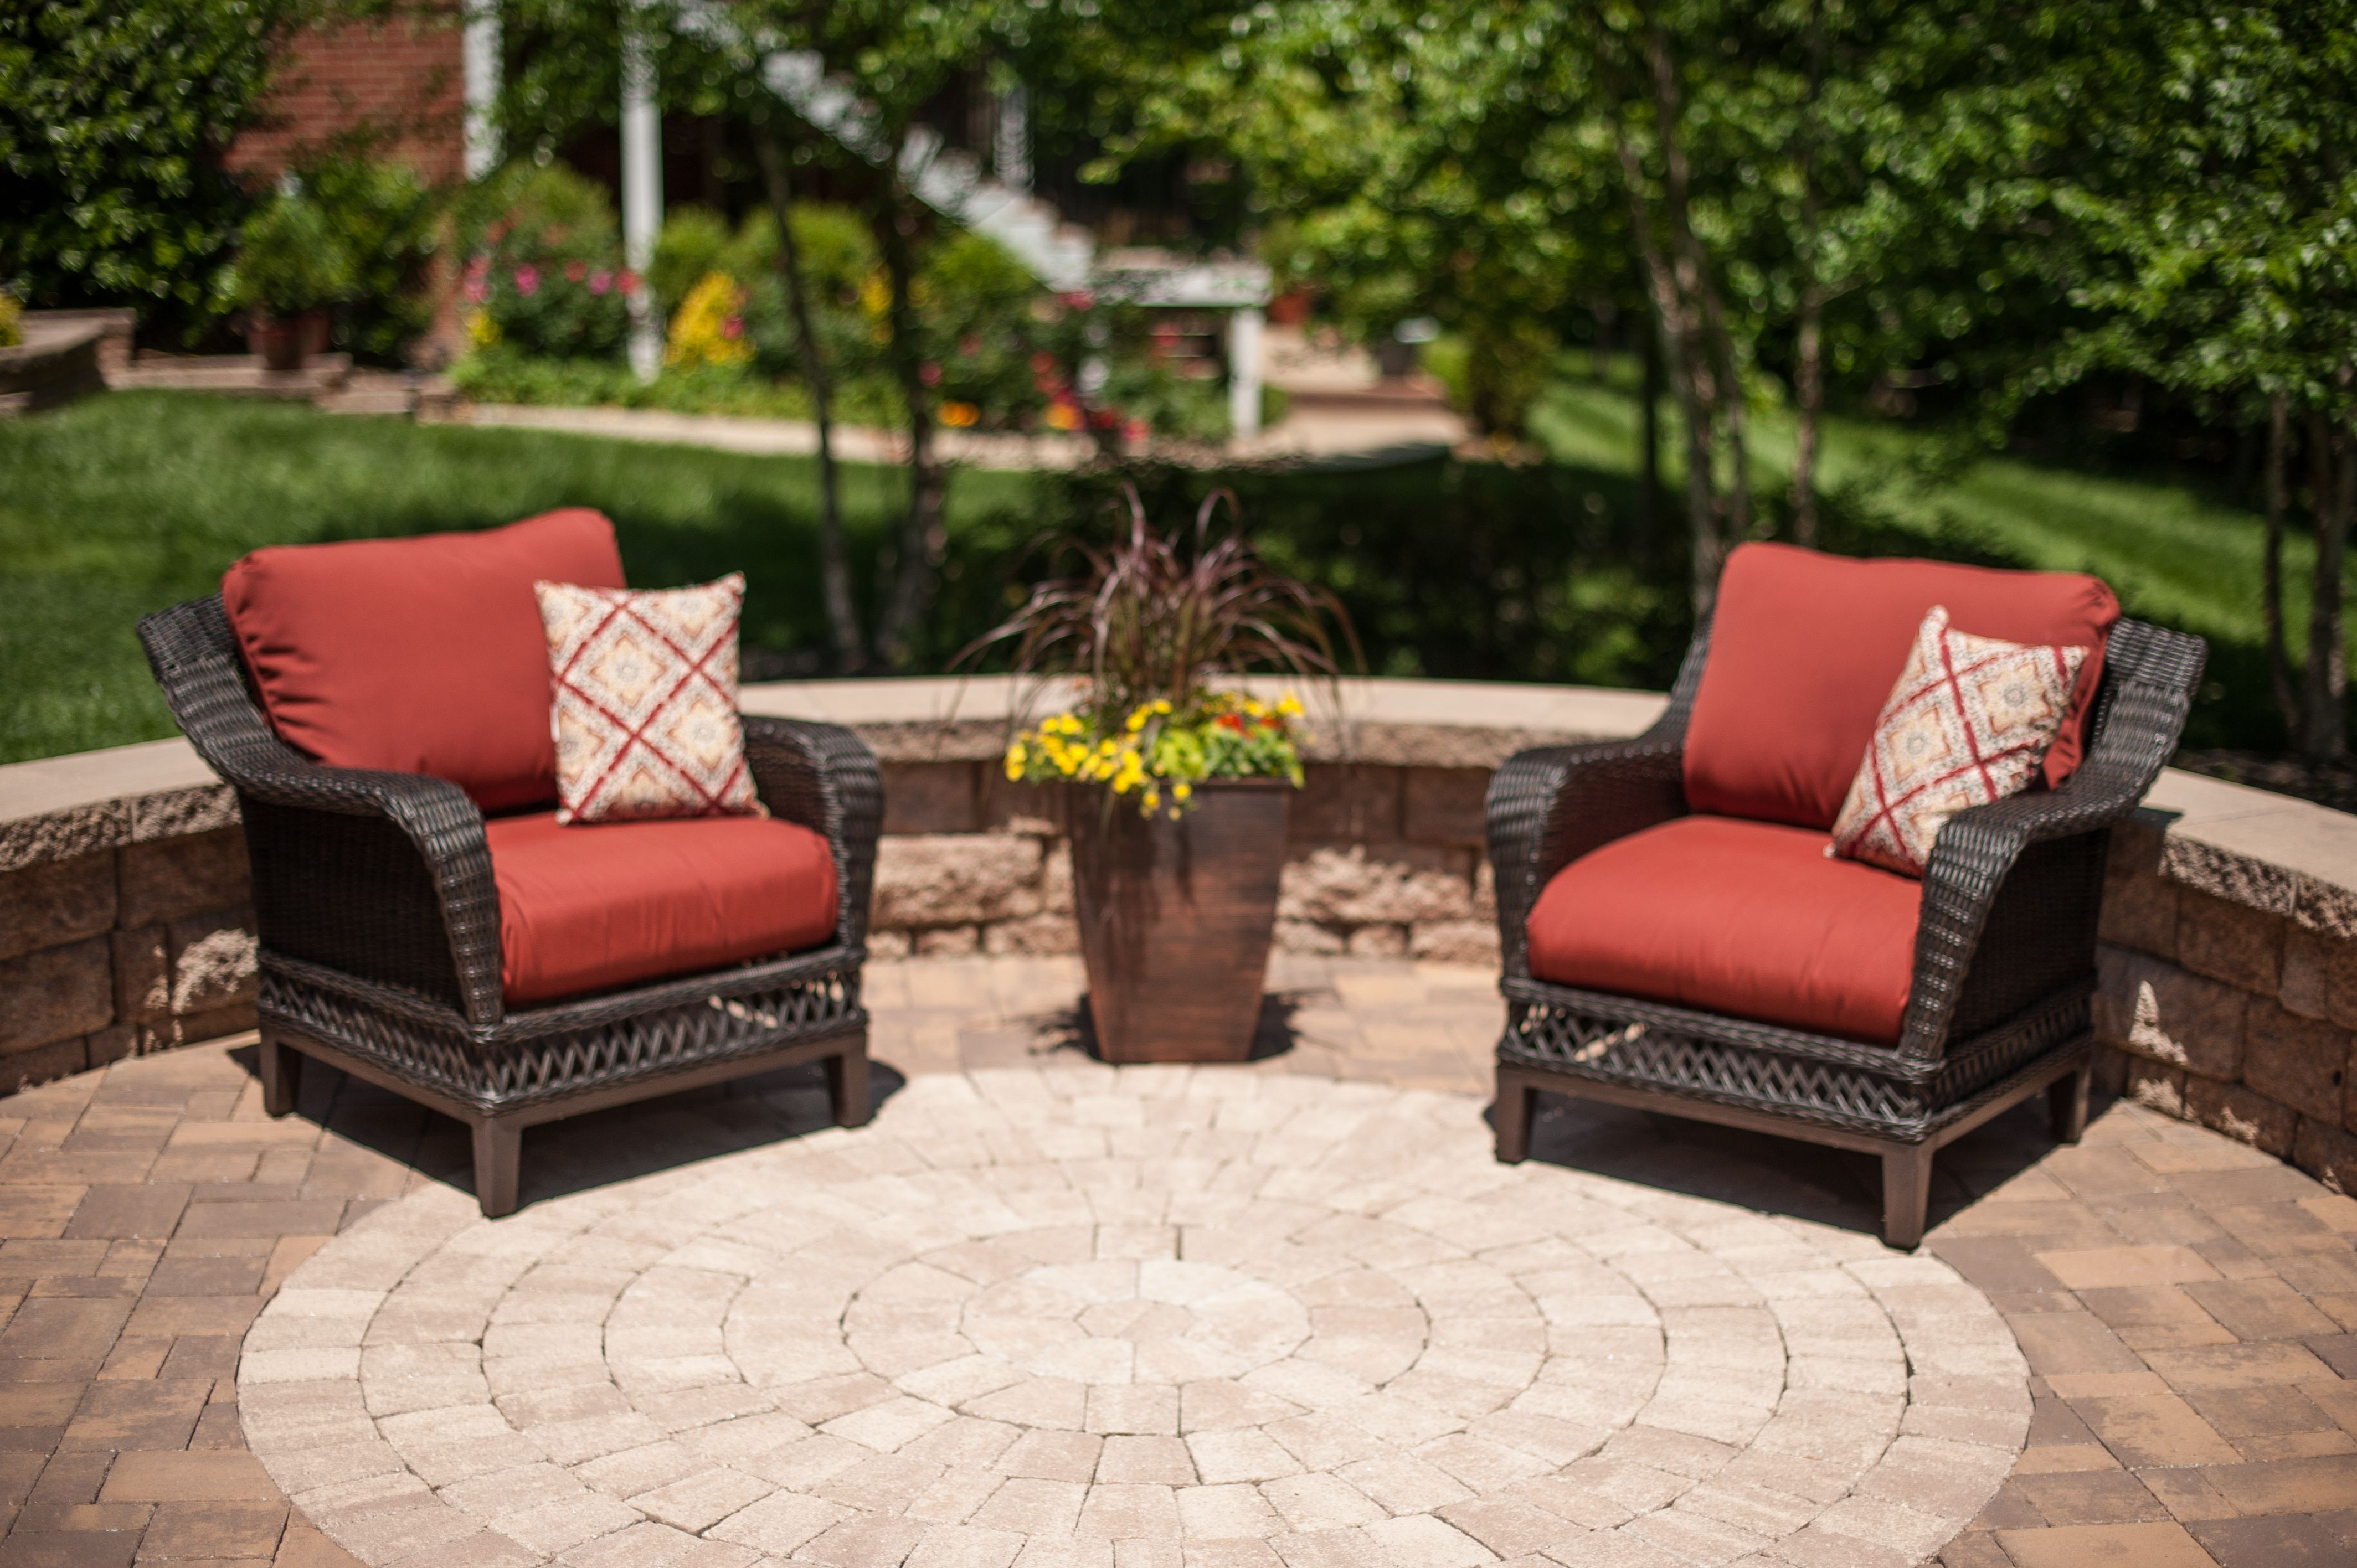 Eagle Bay Hardscapes Are Beautiful And Built For Relaxation Patio Inspiration Outdoor Furniture Sets Concrete Paver Patio